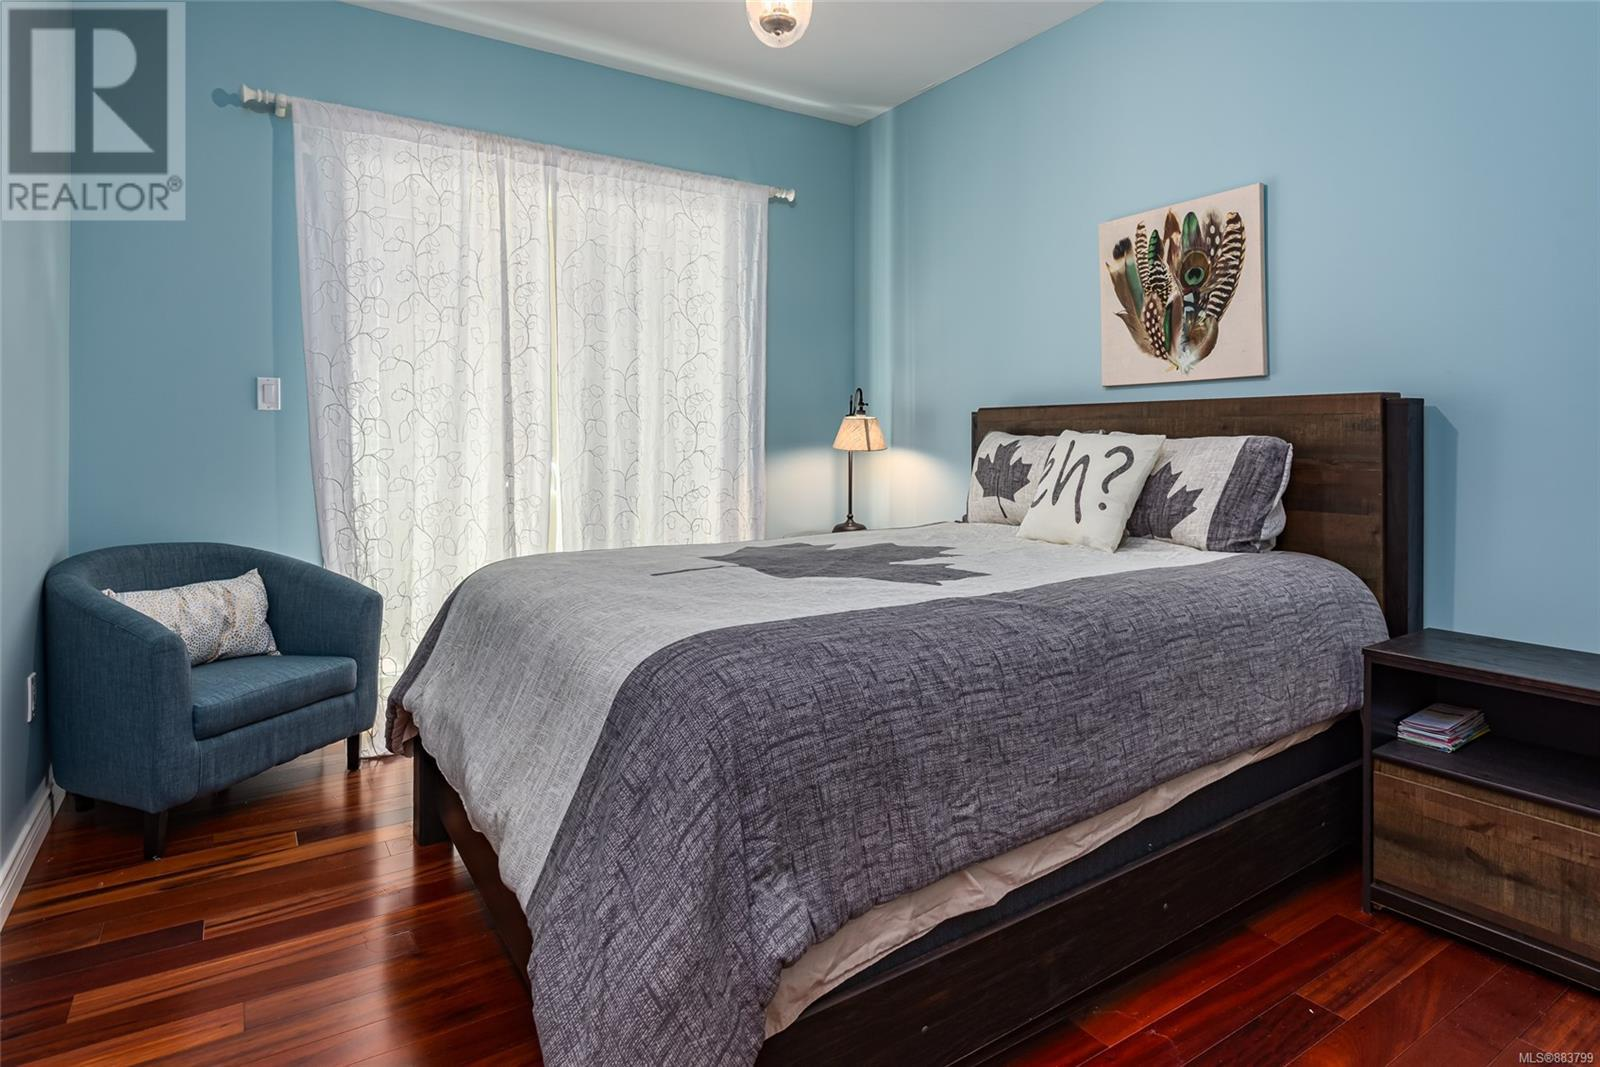 MLS® #883799 - Courtenay House For sale Image #65